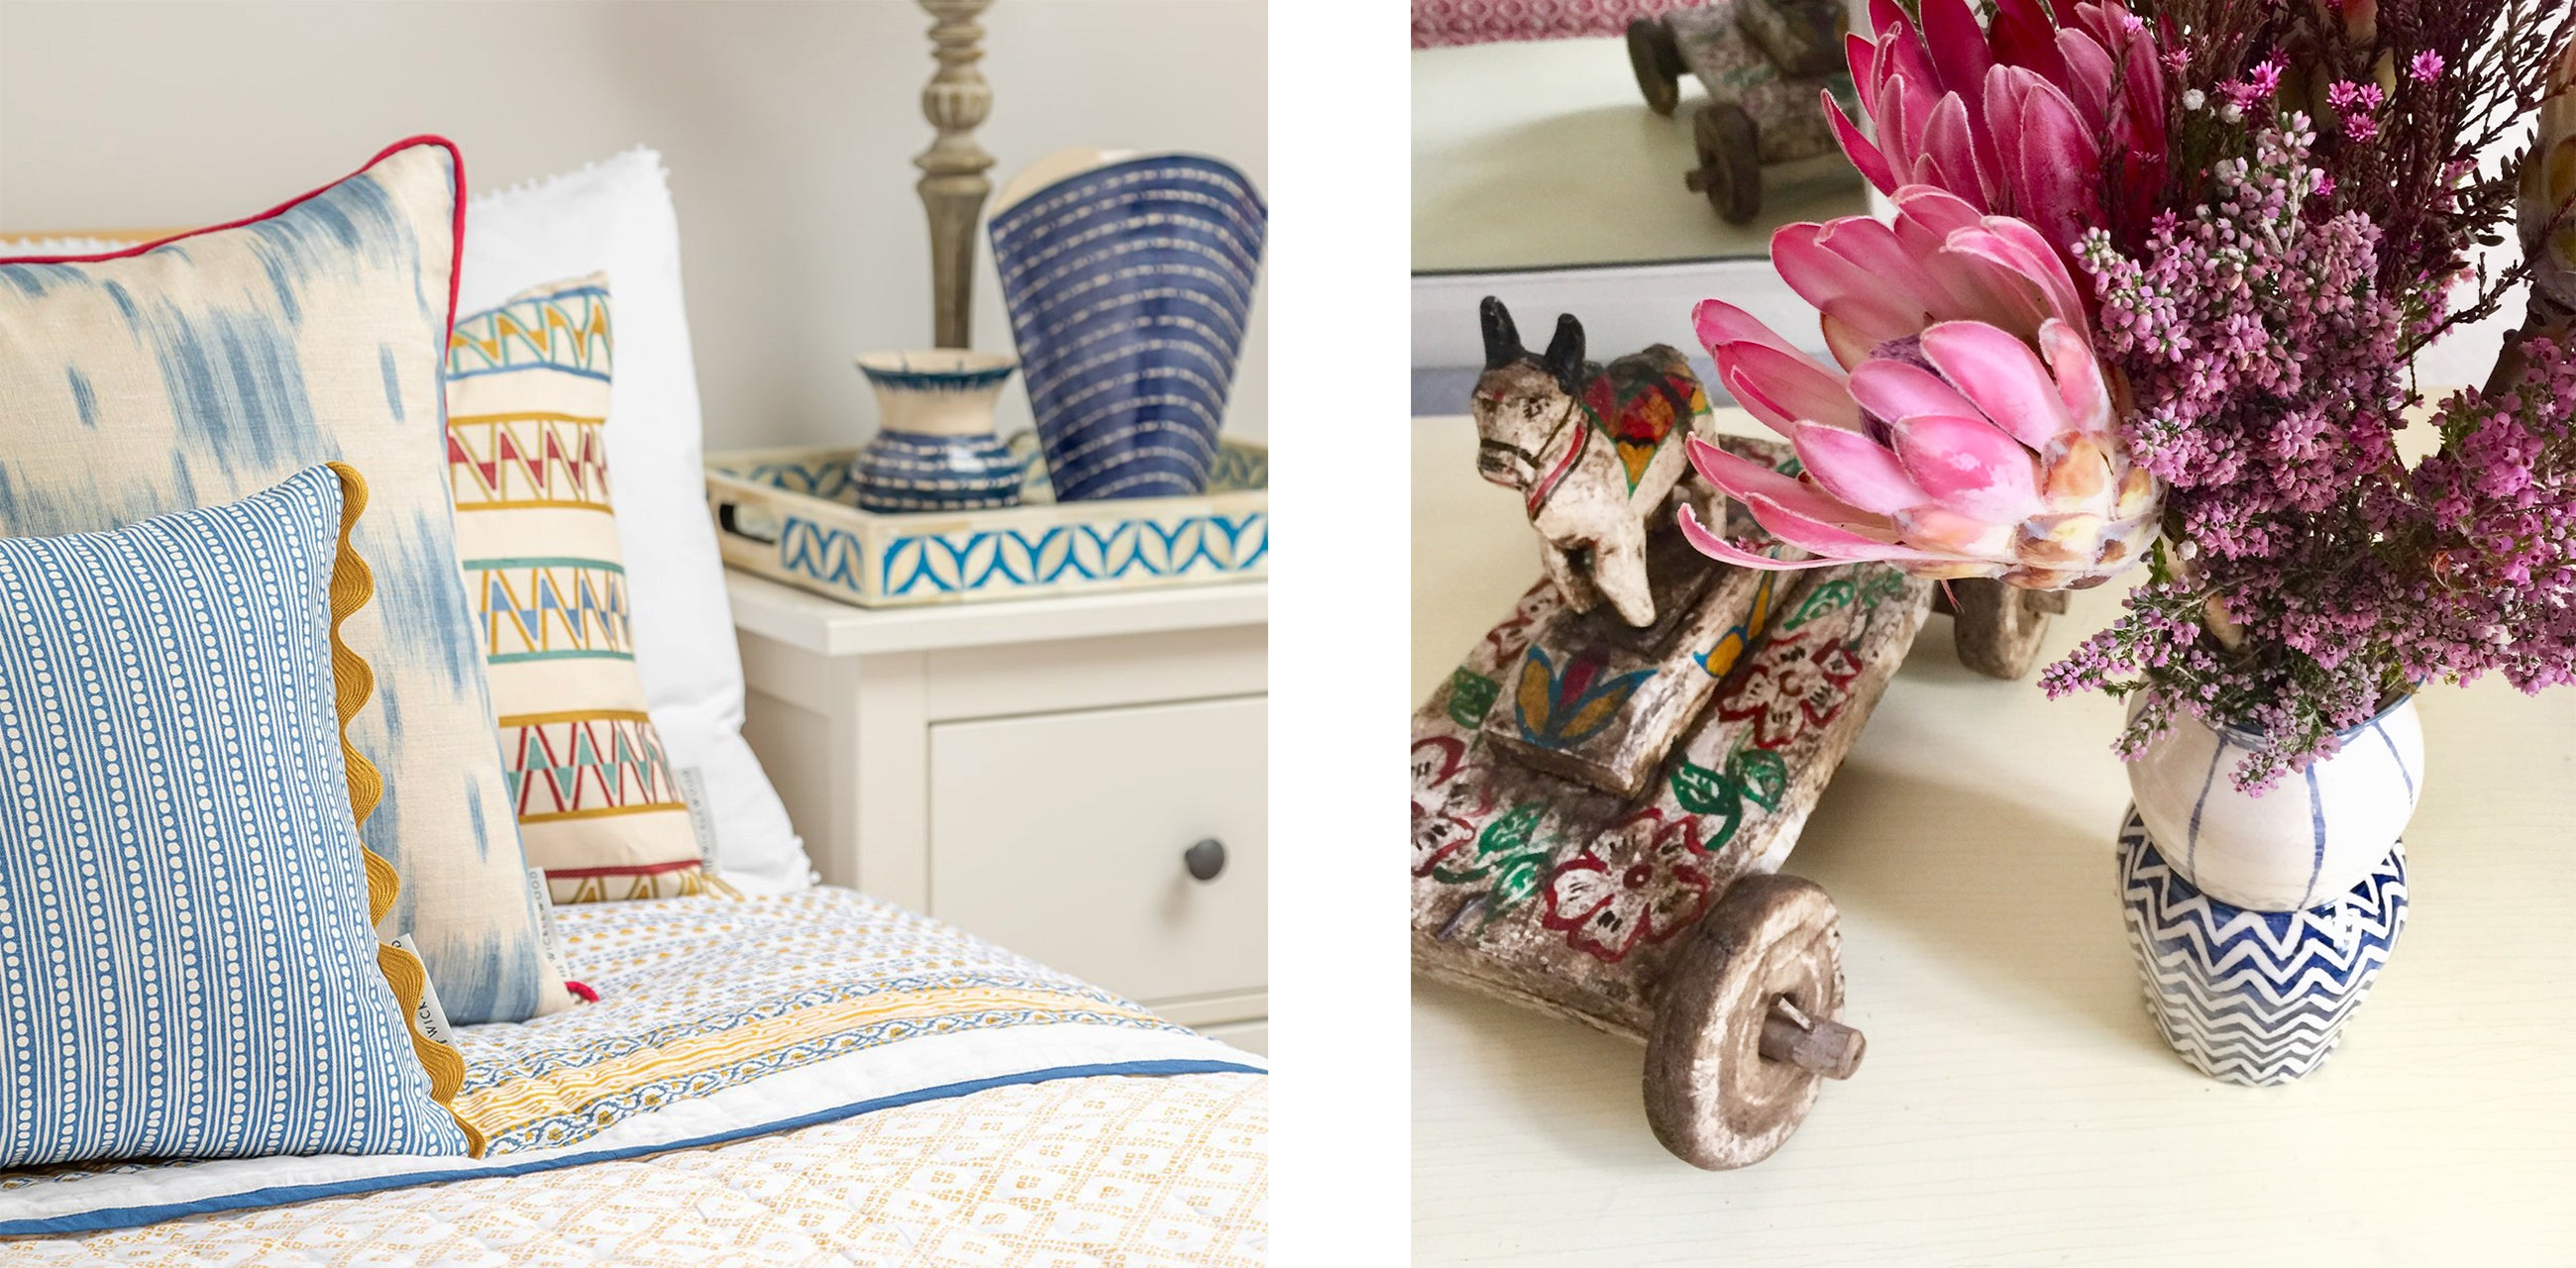 wicklewood bedside details include ceramics, nandi cows and indian inlays